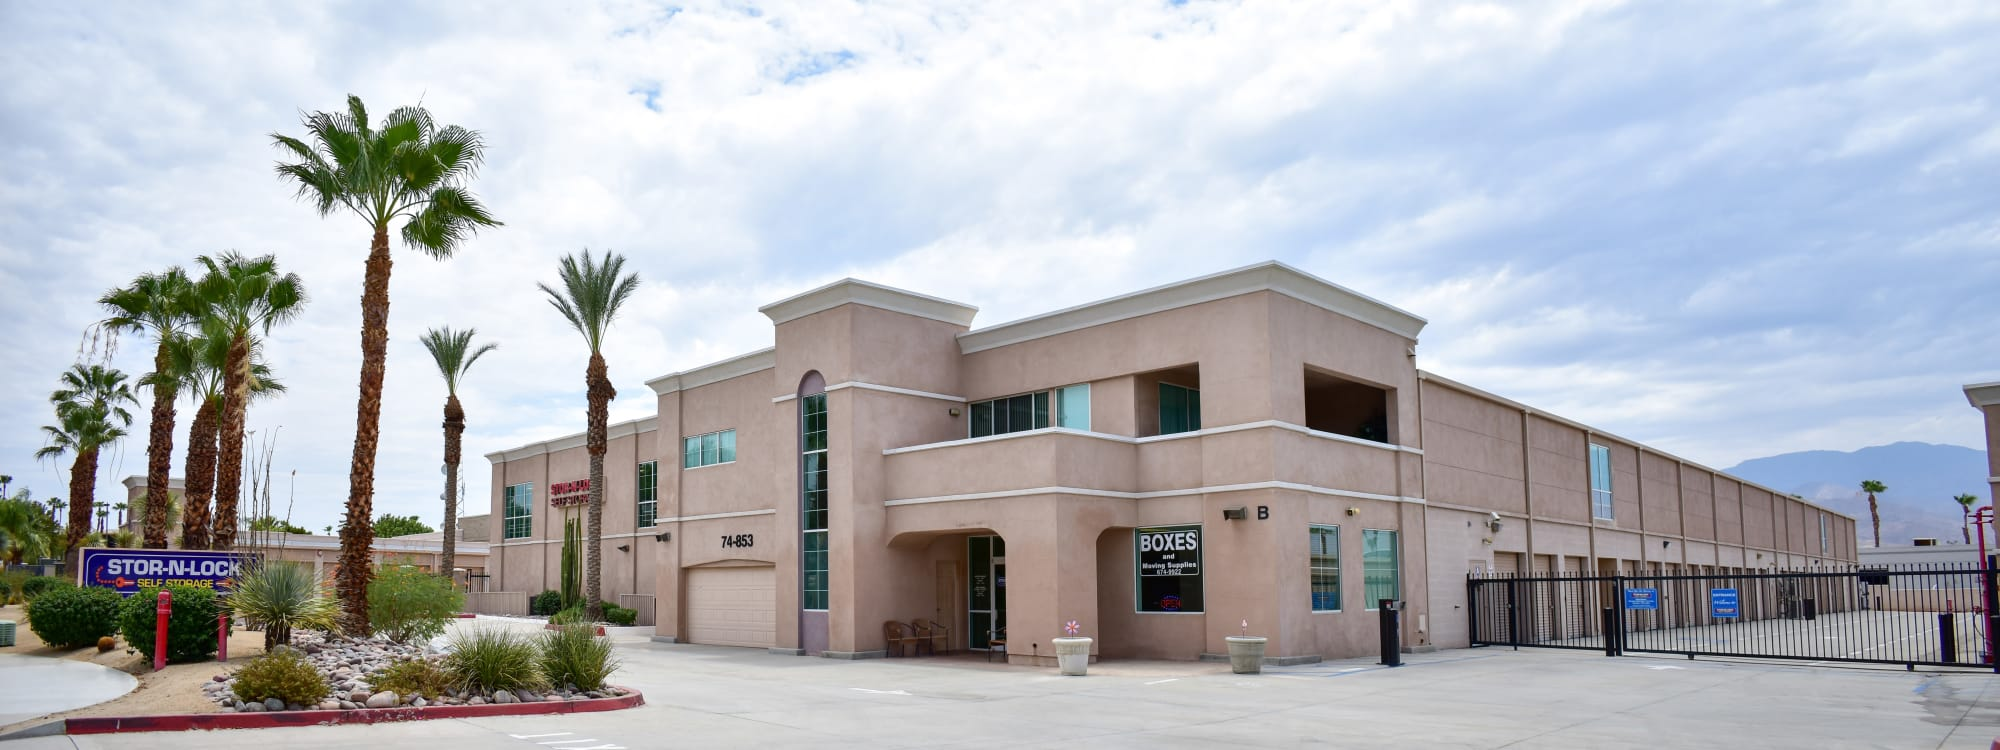 STOR-N-LOCK Self Storage in Palm Desert, California